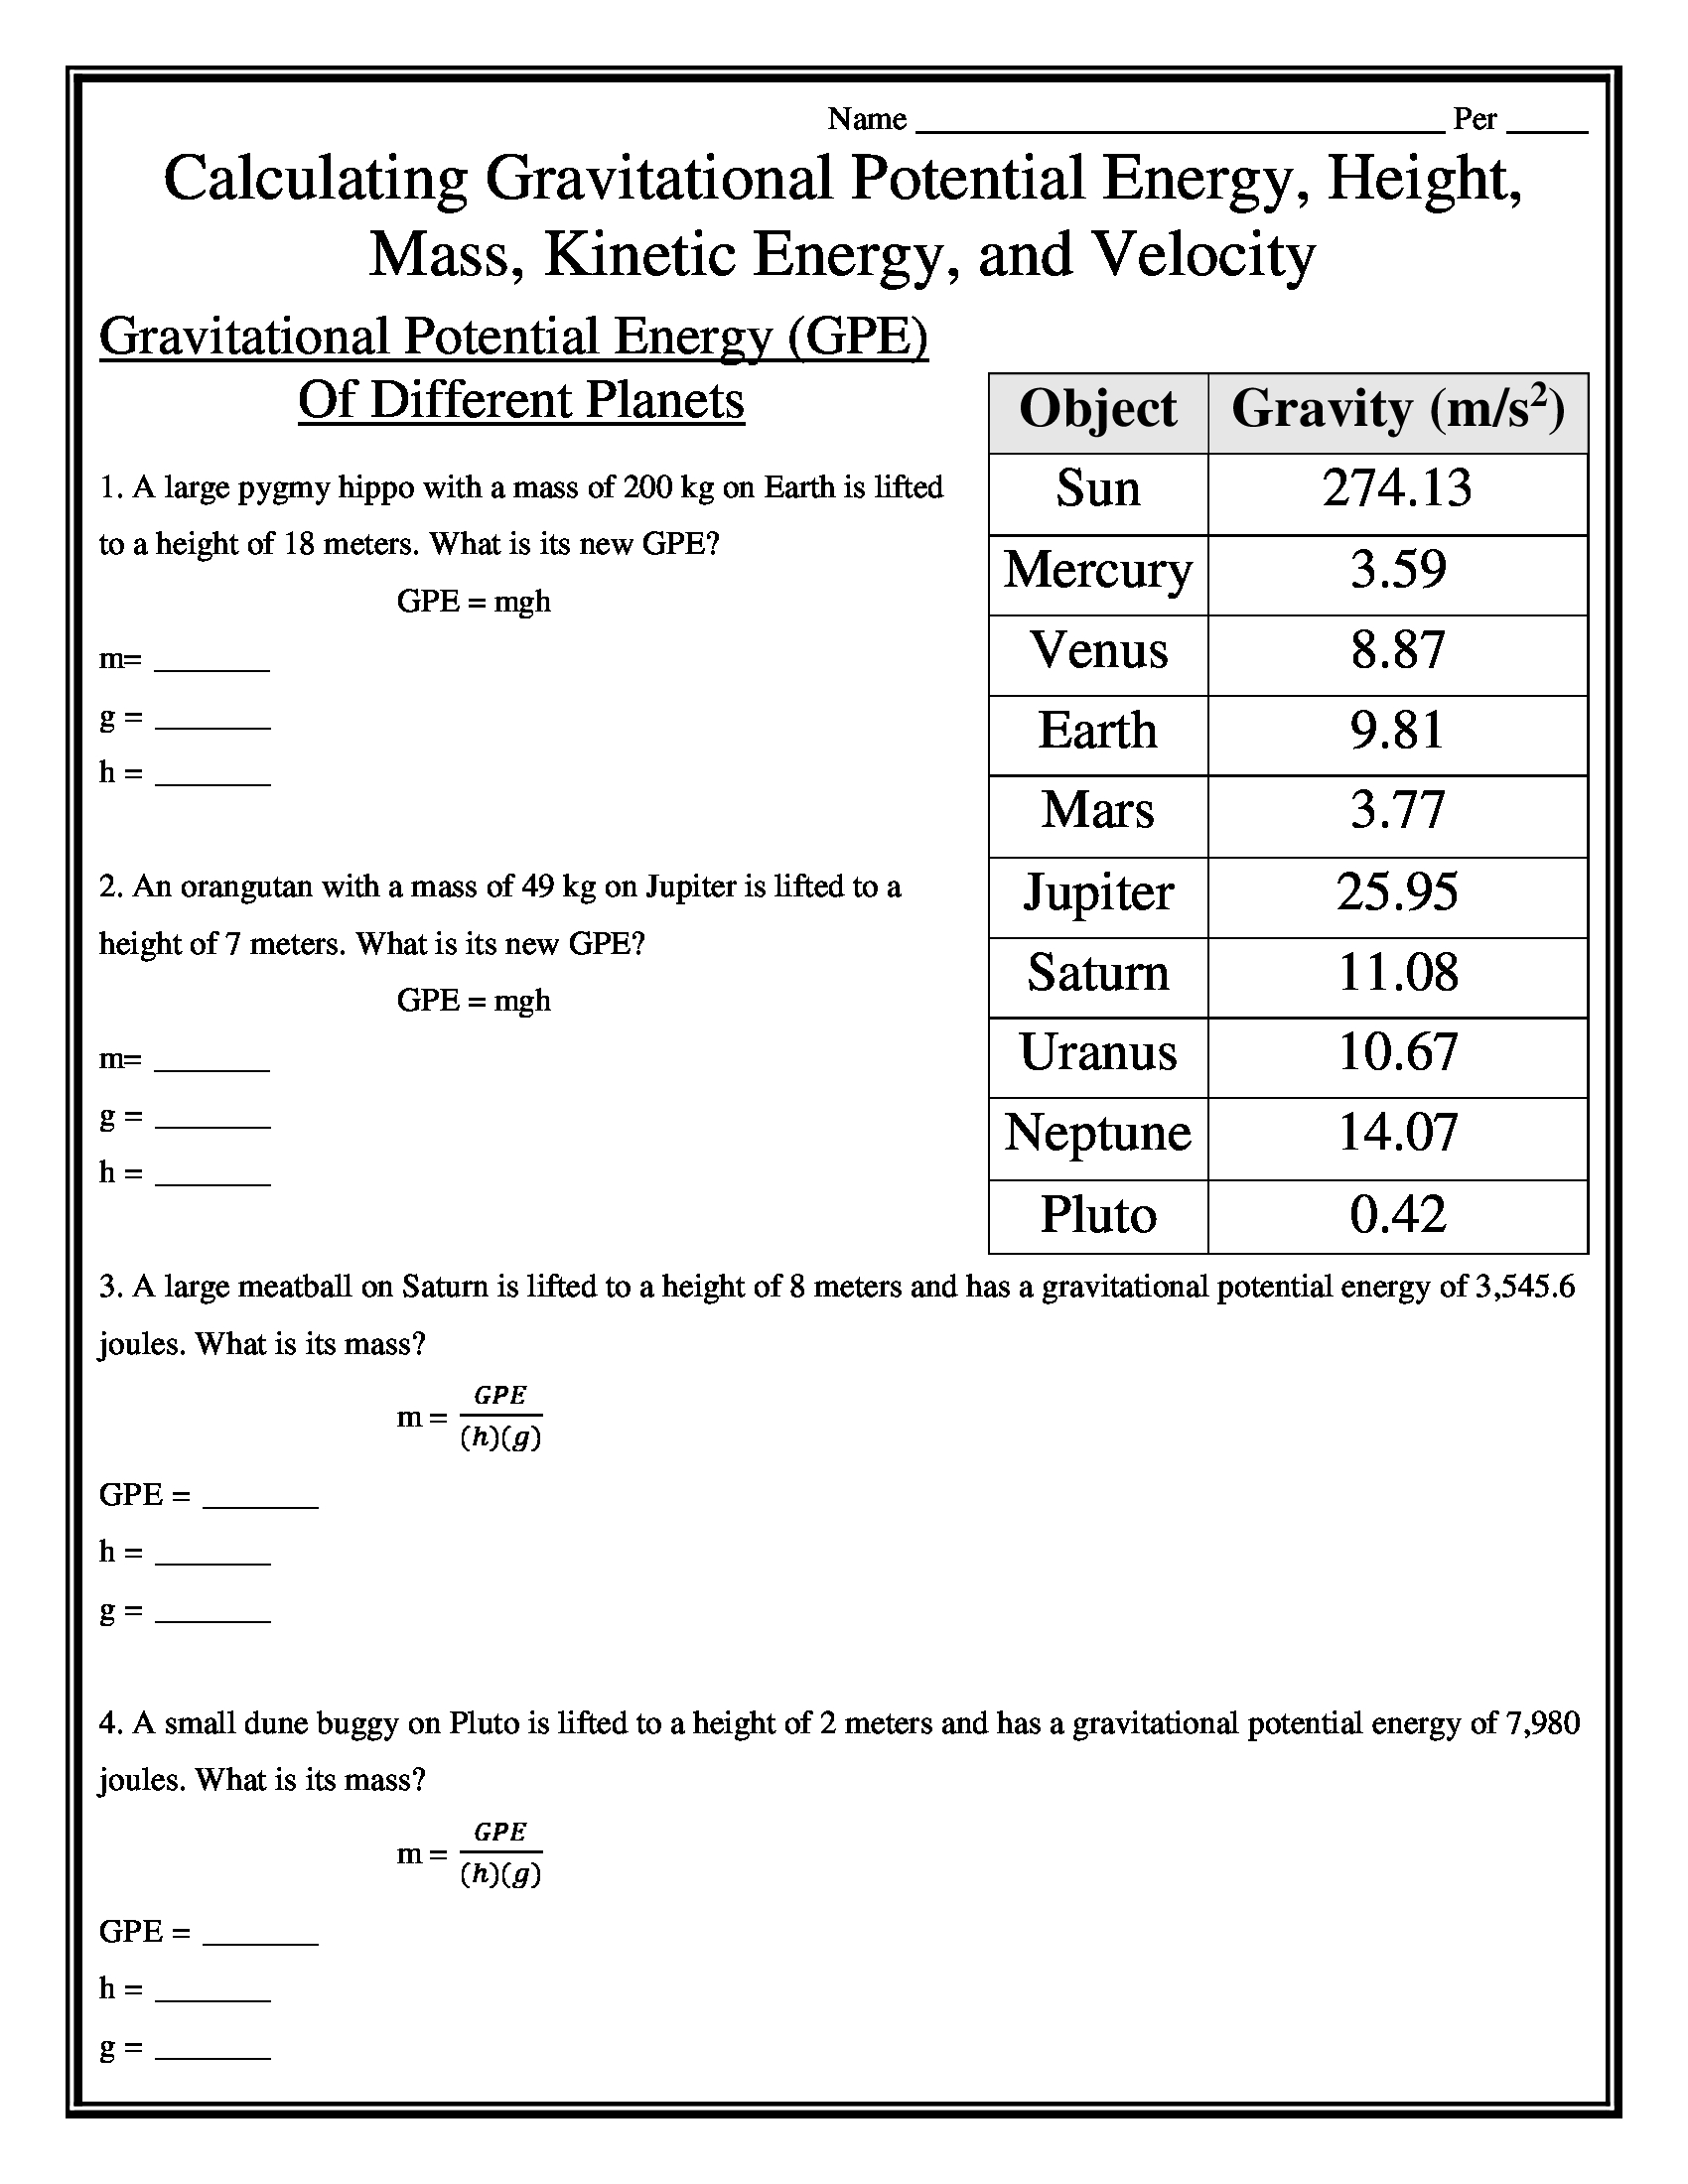 Calculating Gravitational Potential Energy Height Mass